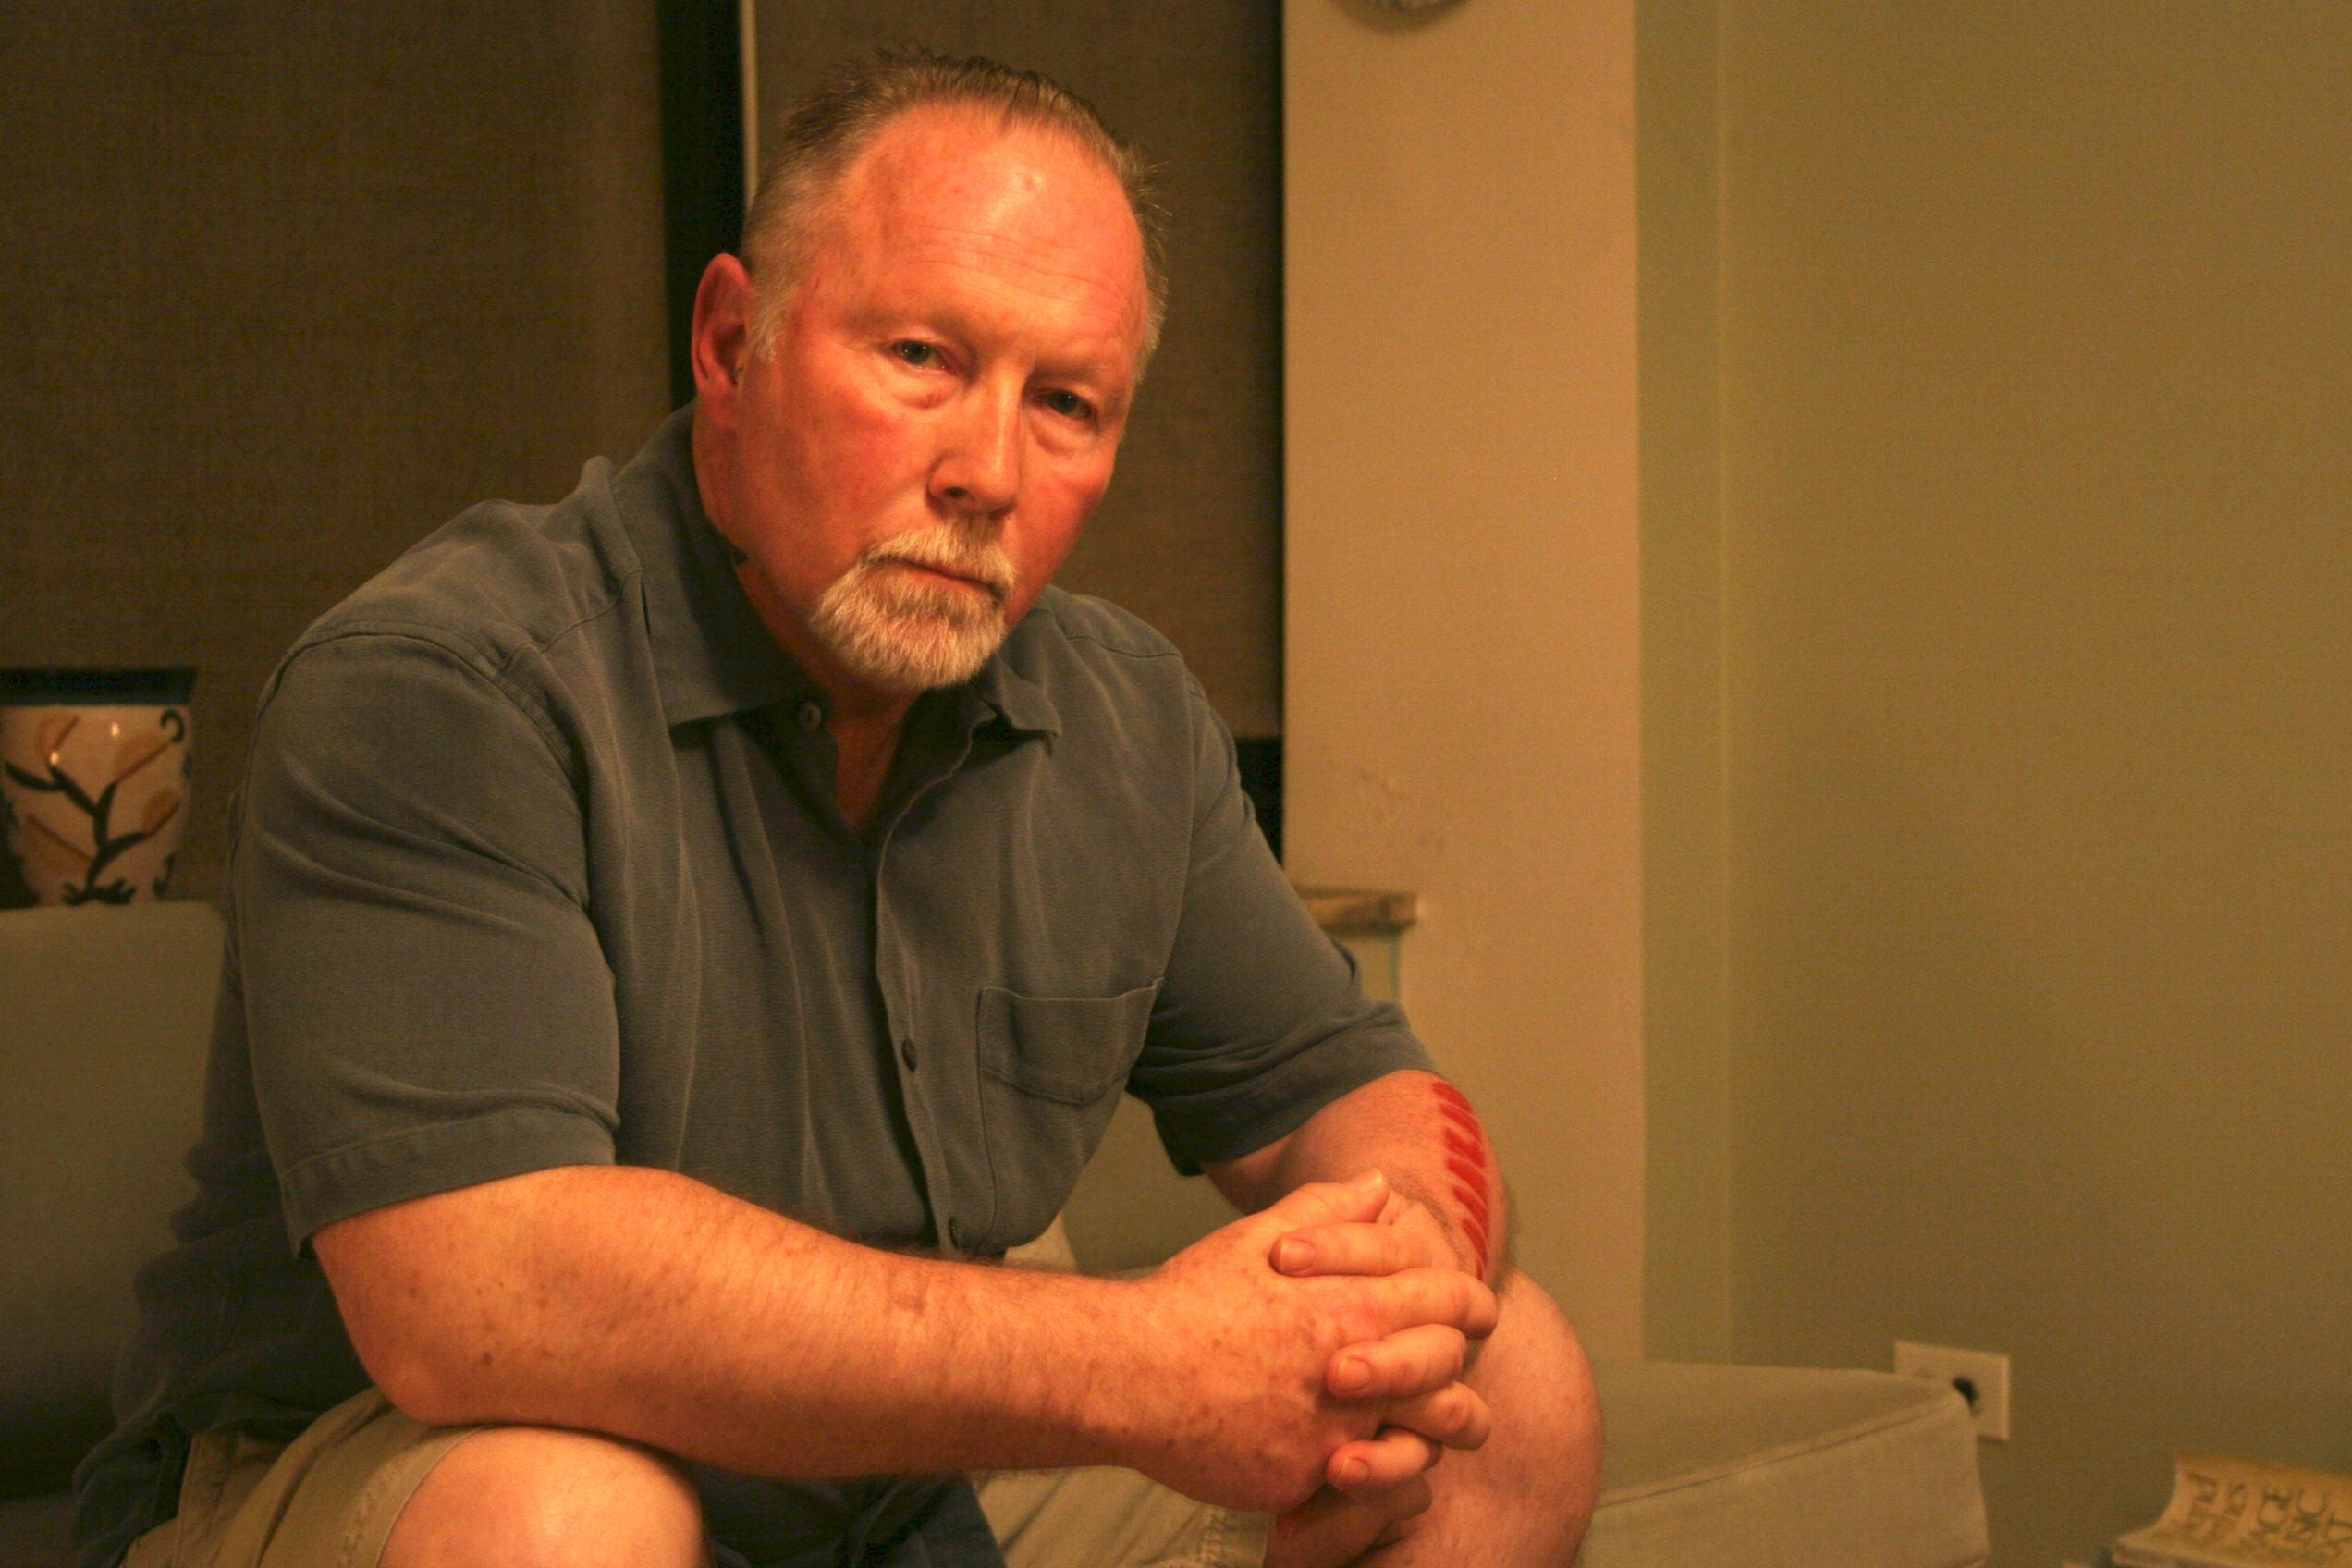 A muscular man with receding hairline and a gray goatee sits, hands folded, looking at the camera at the camera, expressionless.